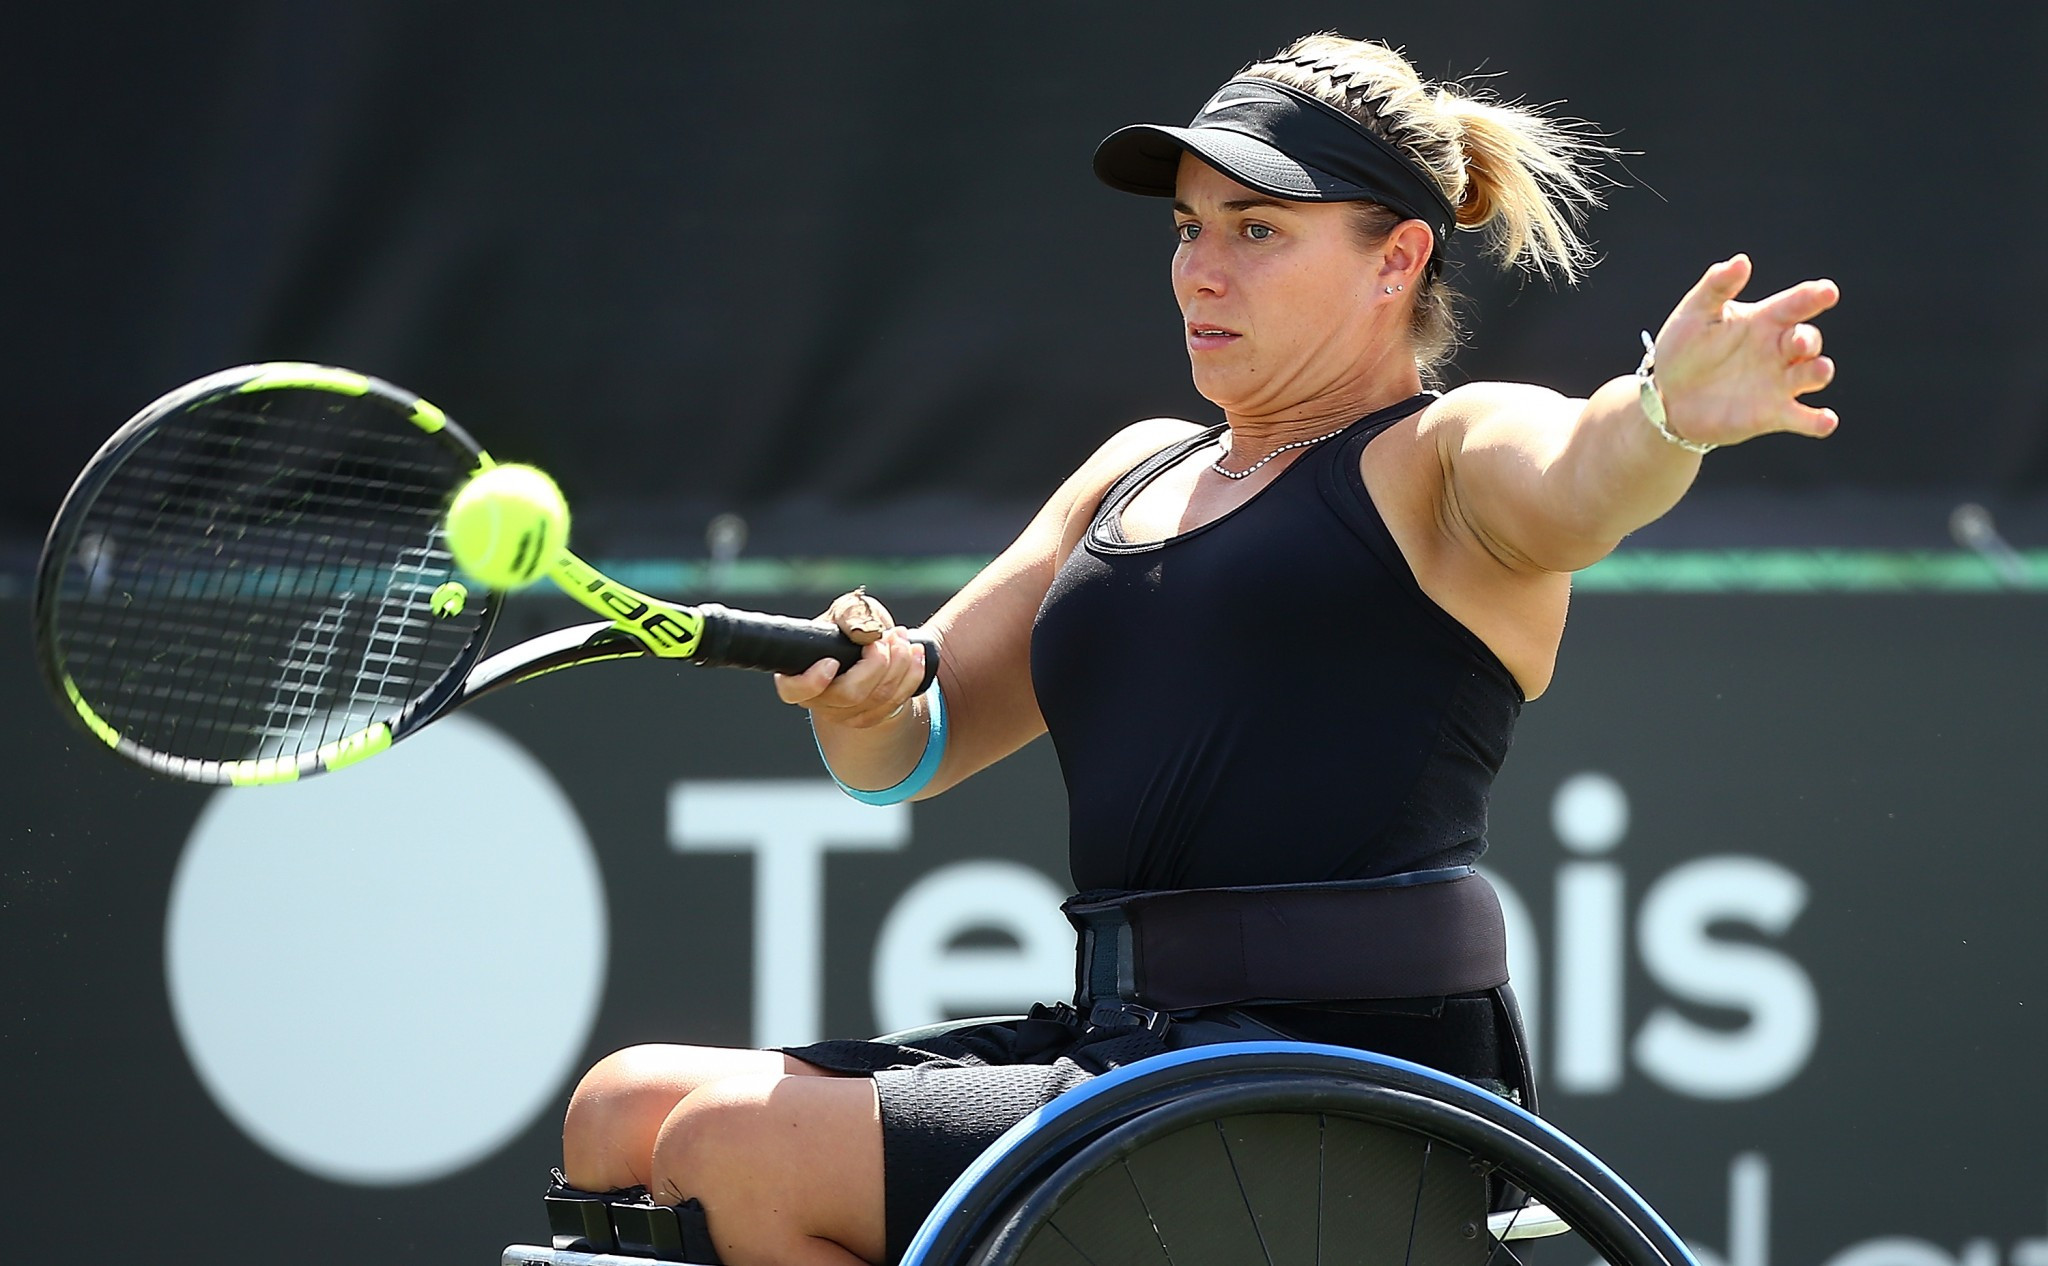 Shuker survives fightback in British Open Wheelchair Tennis Championships